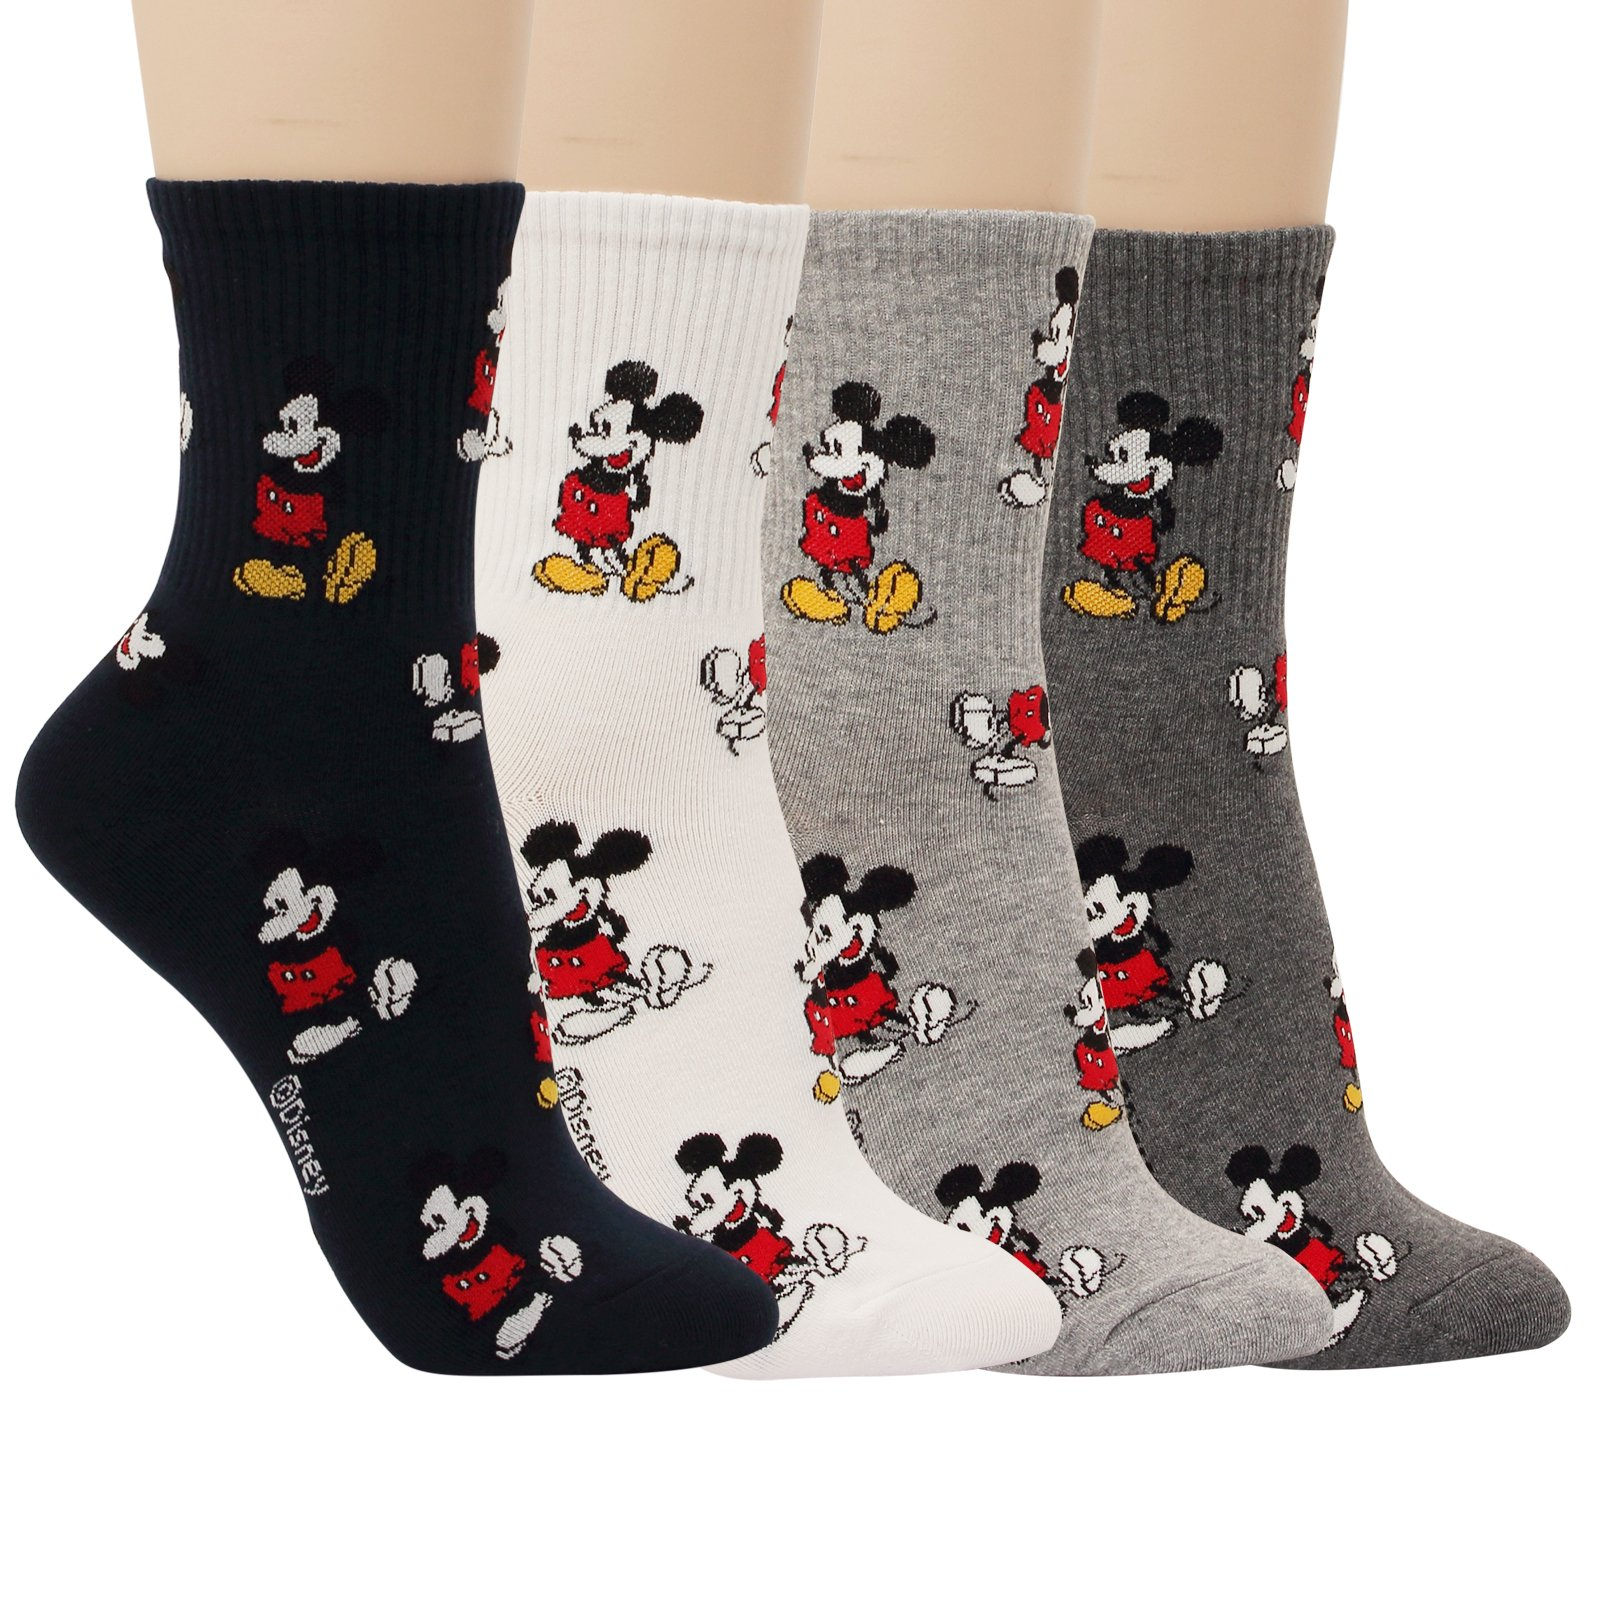 Disney Pixar Character Women Crew Socks For Girl Boy Teenagers Cotton (ModelNo.1-4pairs)